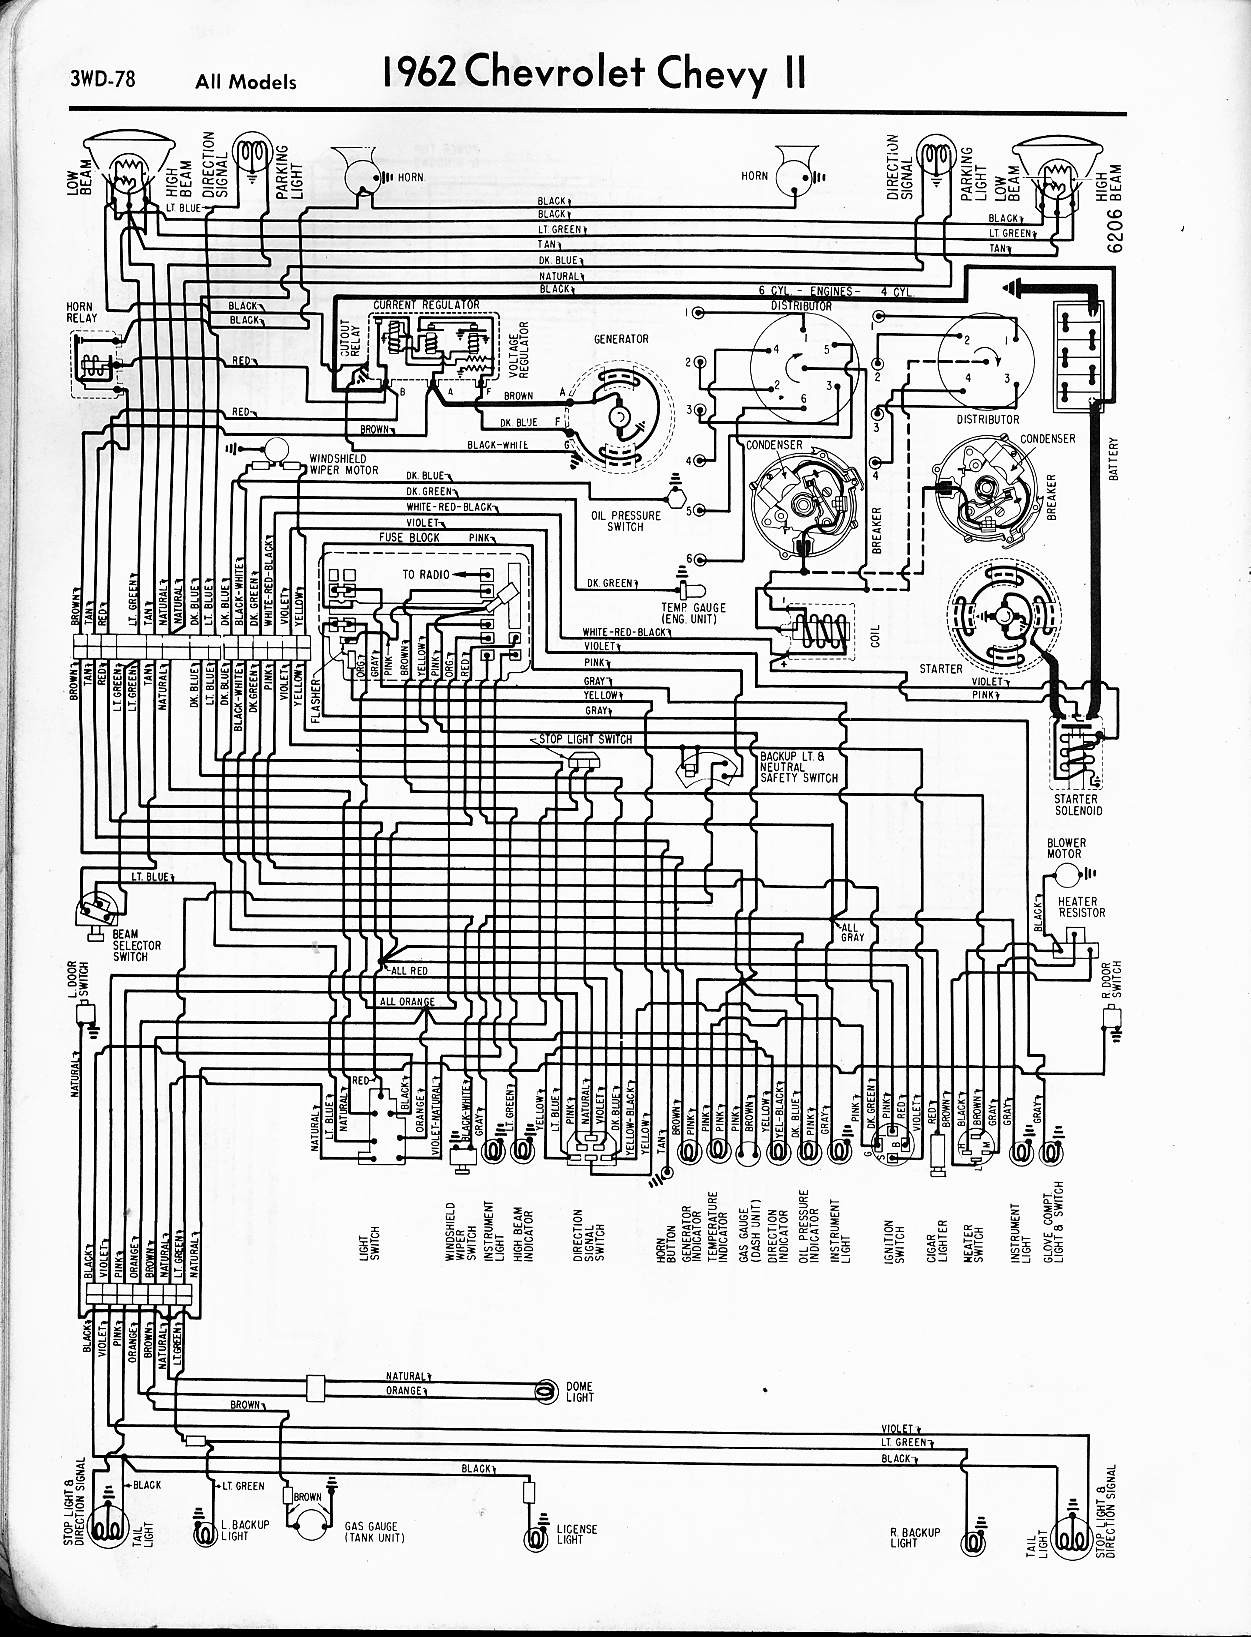 67 72 Chevy Truck Wiring Diagram My Wiring DIagram